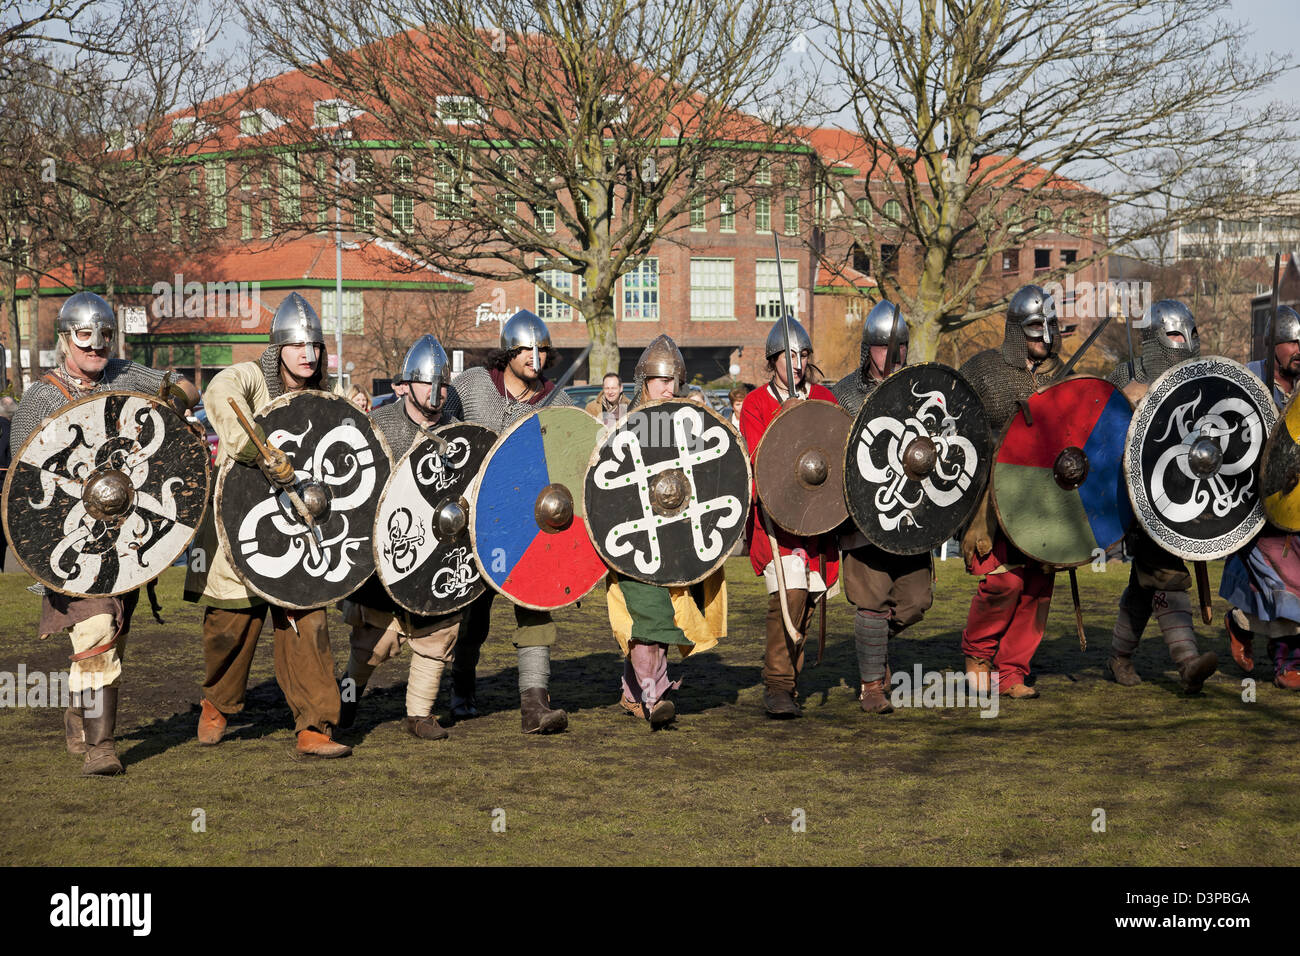 The Viking Festival York North Yorkshire England UK United Kingdom GB Great Britain - Stock Image